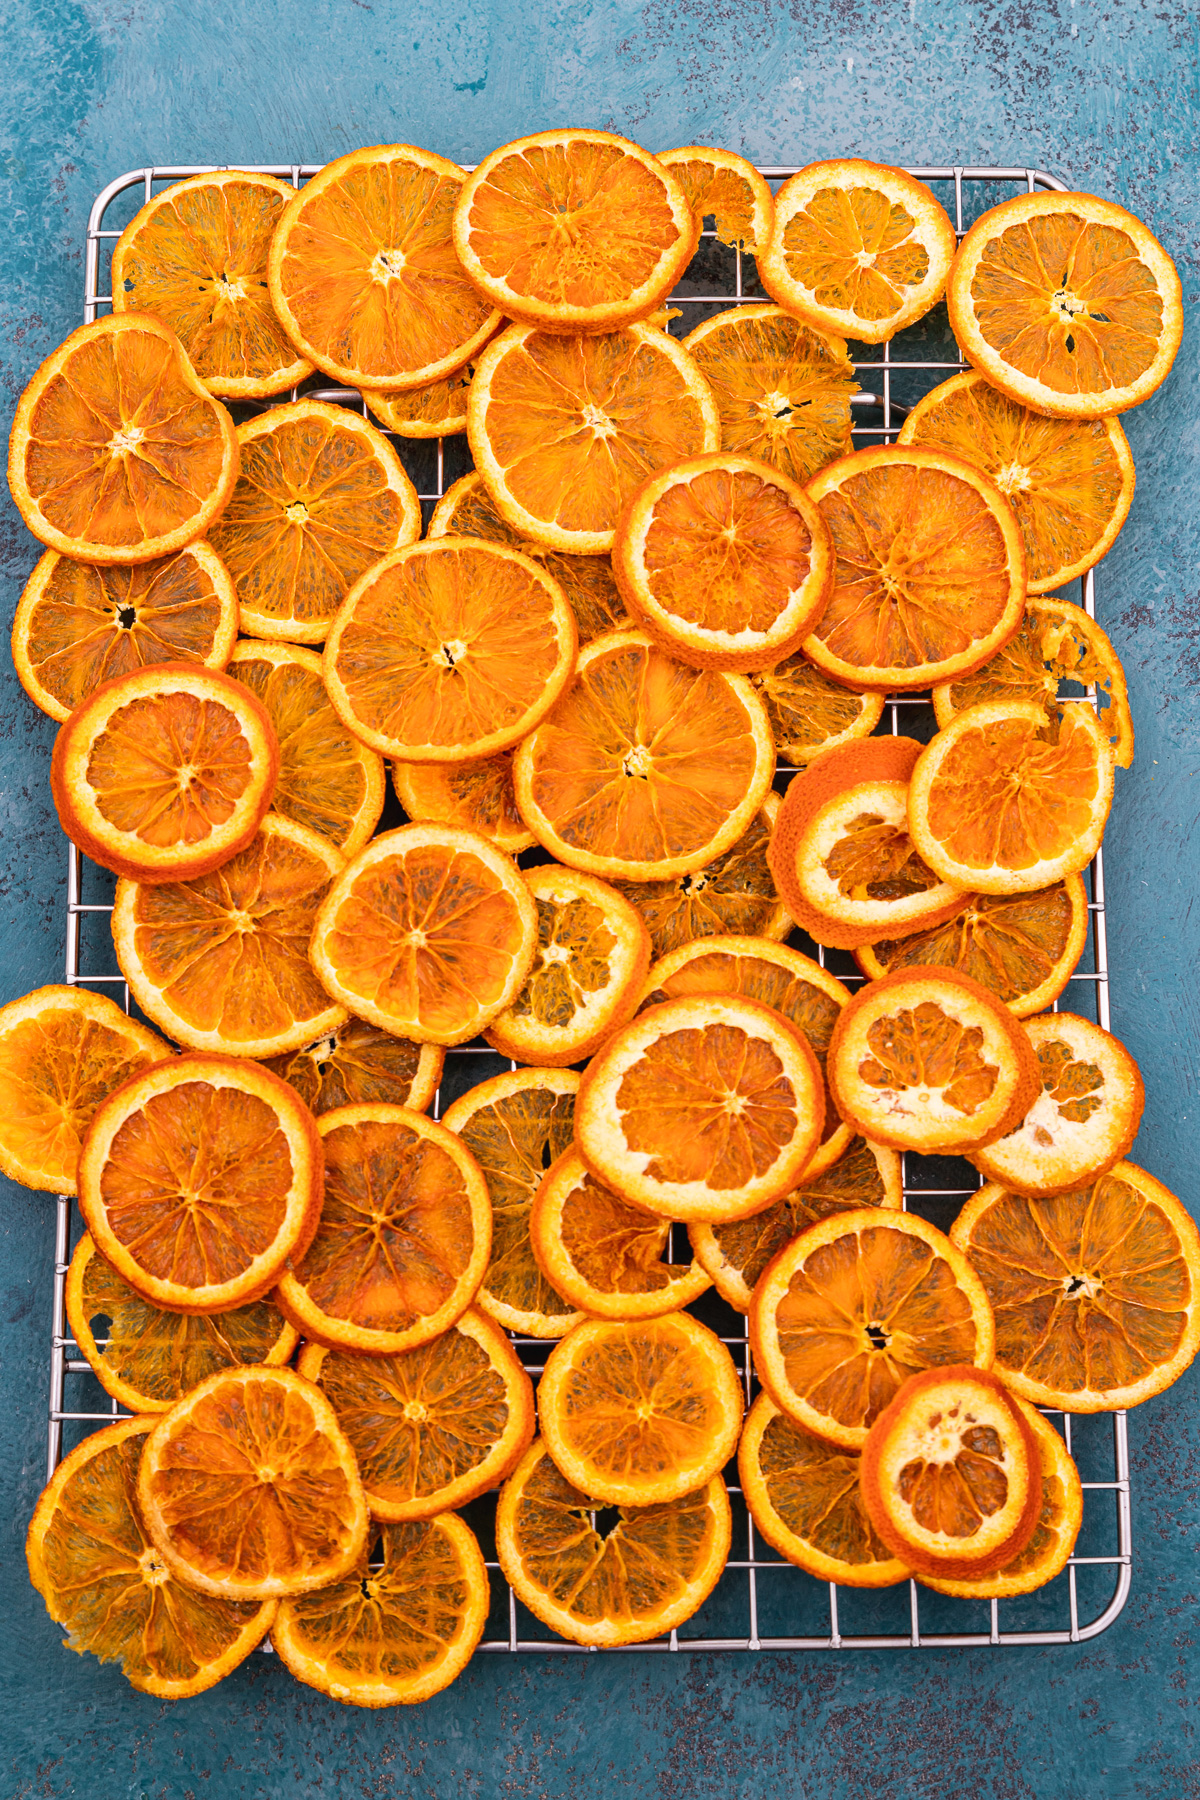 Dried orange slices from above piled onto a wire rack and on a blue background